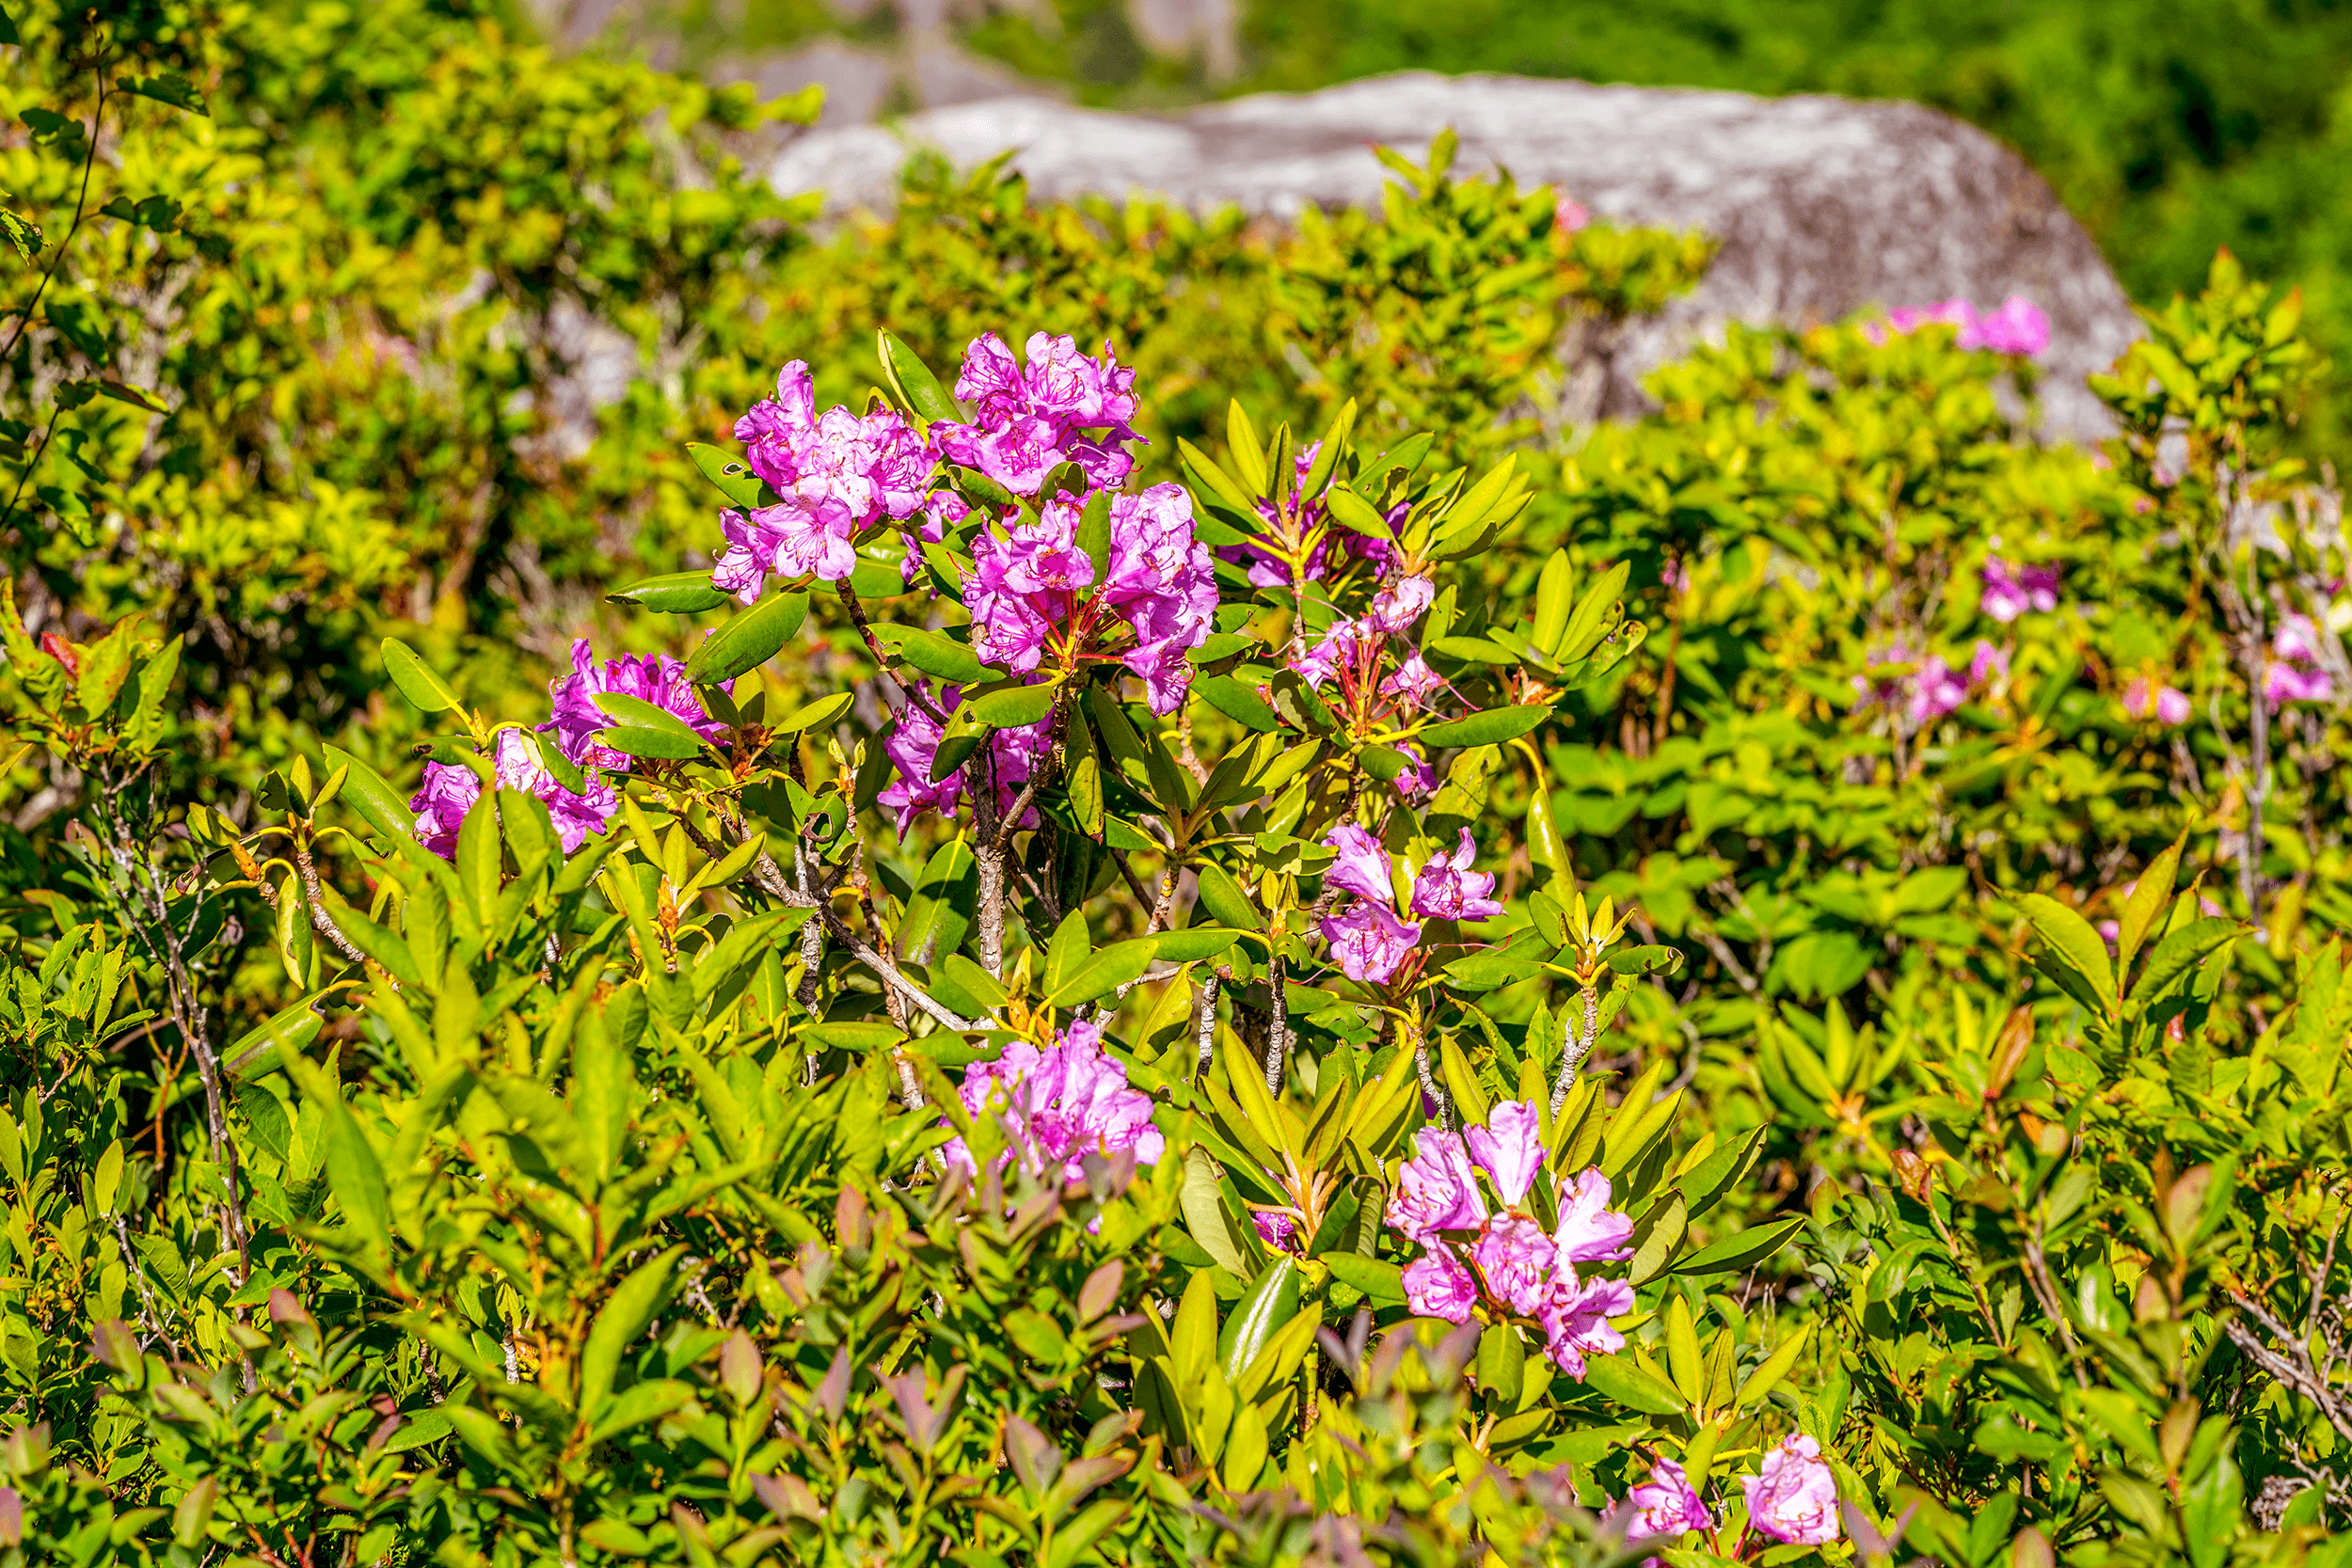 """In case you visit the  Rough Ridge Overlook  in May or June, you will be able to admire the  Catawba Rhododendron , named for the Catawba Indians, who lived east of the Catawba River. Blooming between late May and mid-June, the  Catawba Rhododendron  is also called """"nature's thermometer."""" When the temperature drops, its leaves curl inward. It is said, at below 20°F (-7°C), the leaves are curled """"as tight like a cigar."""""""